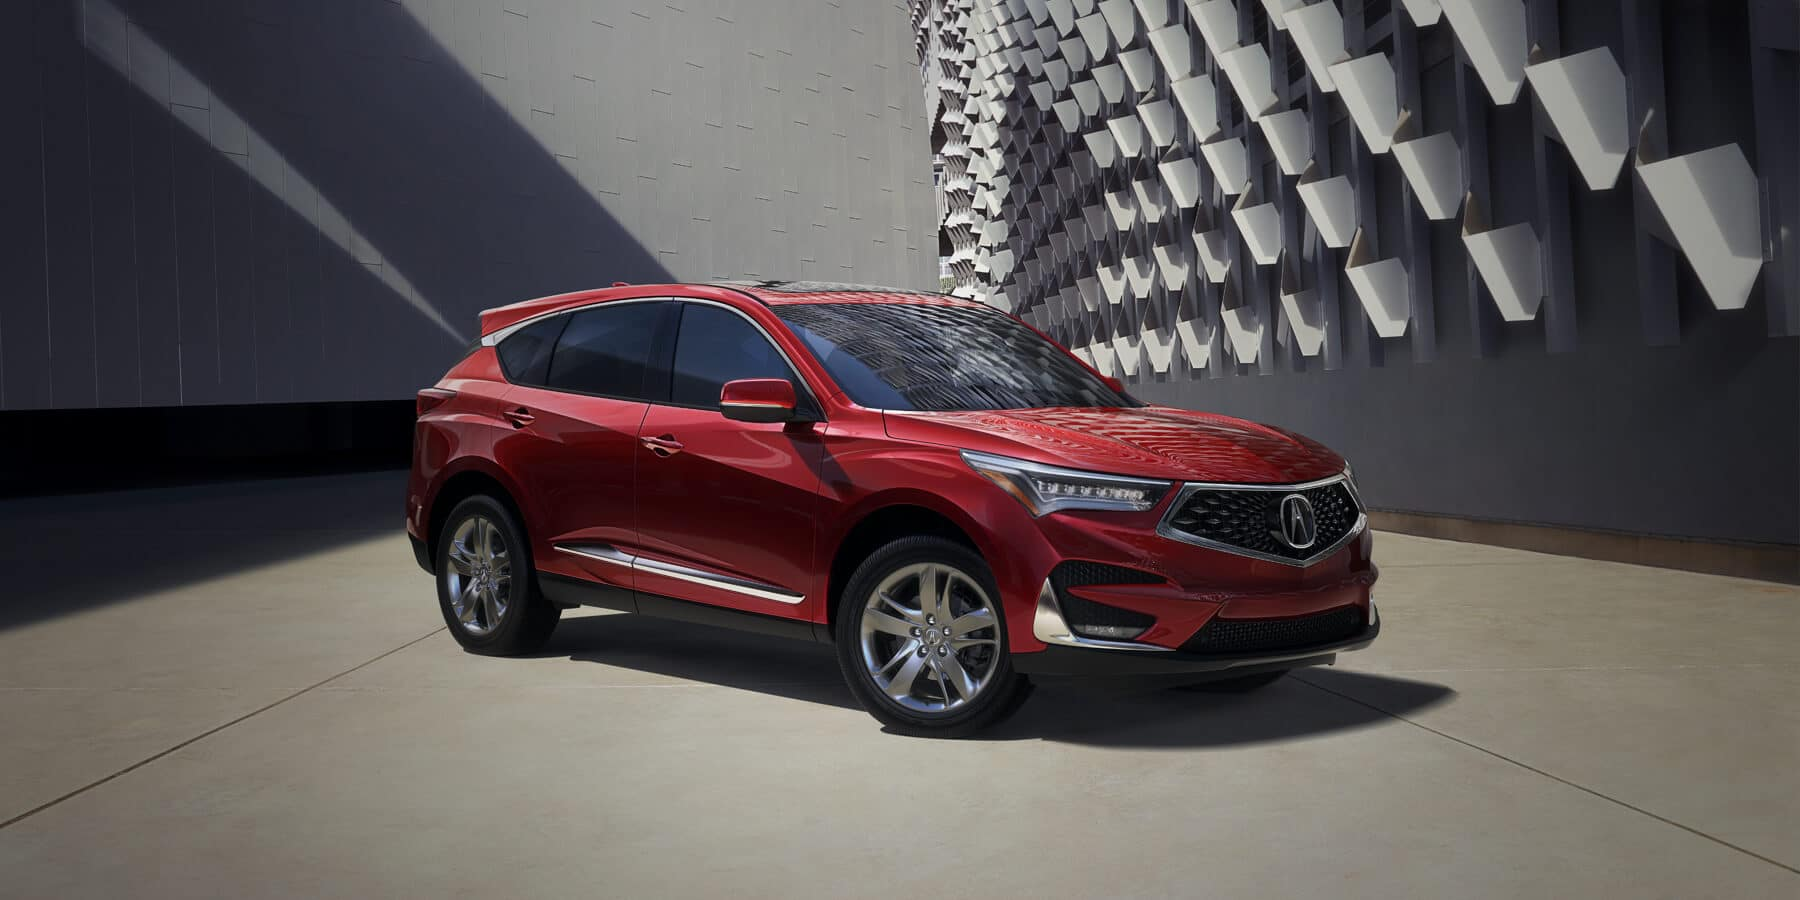 2020 Acura RDX Performance Red Pearl Front Angle